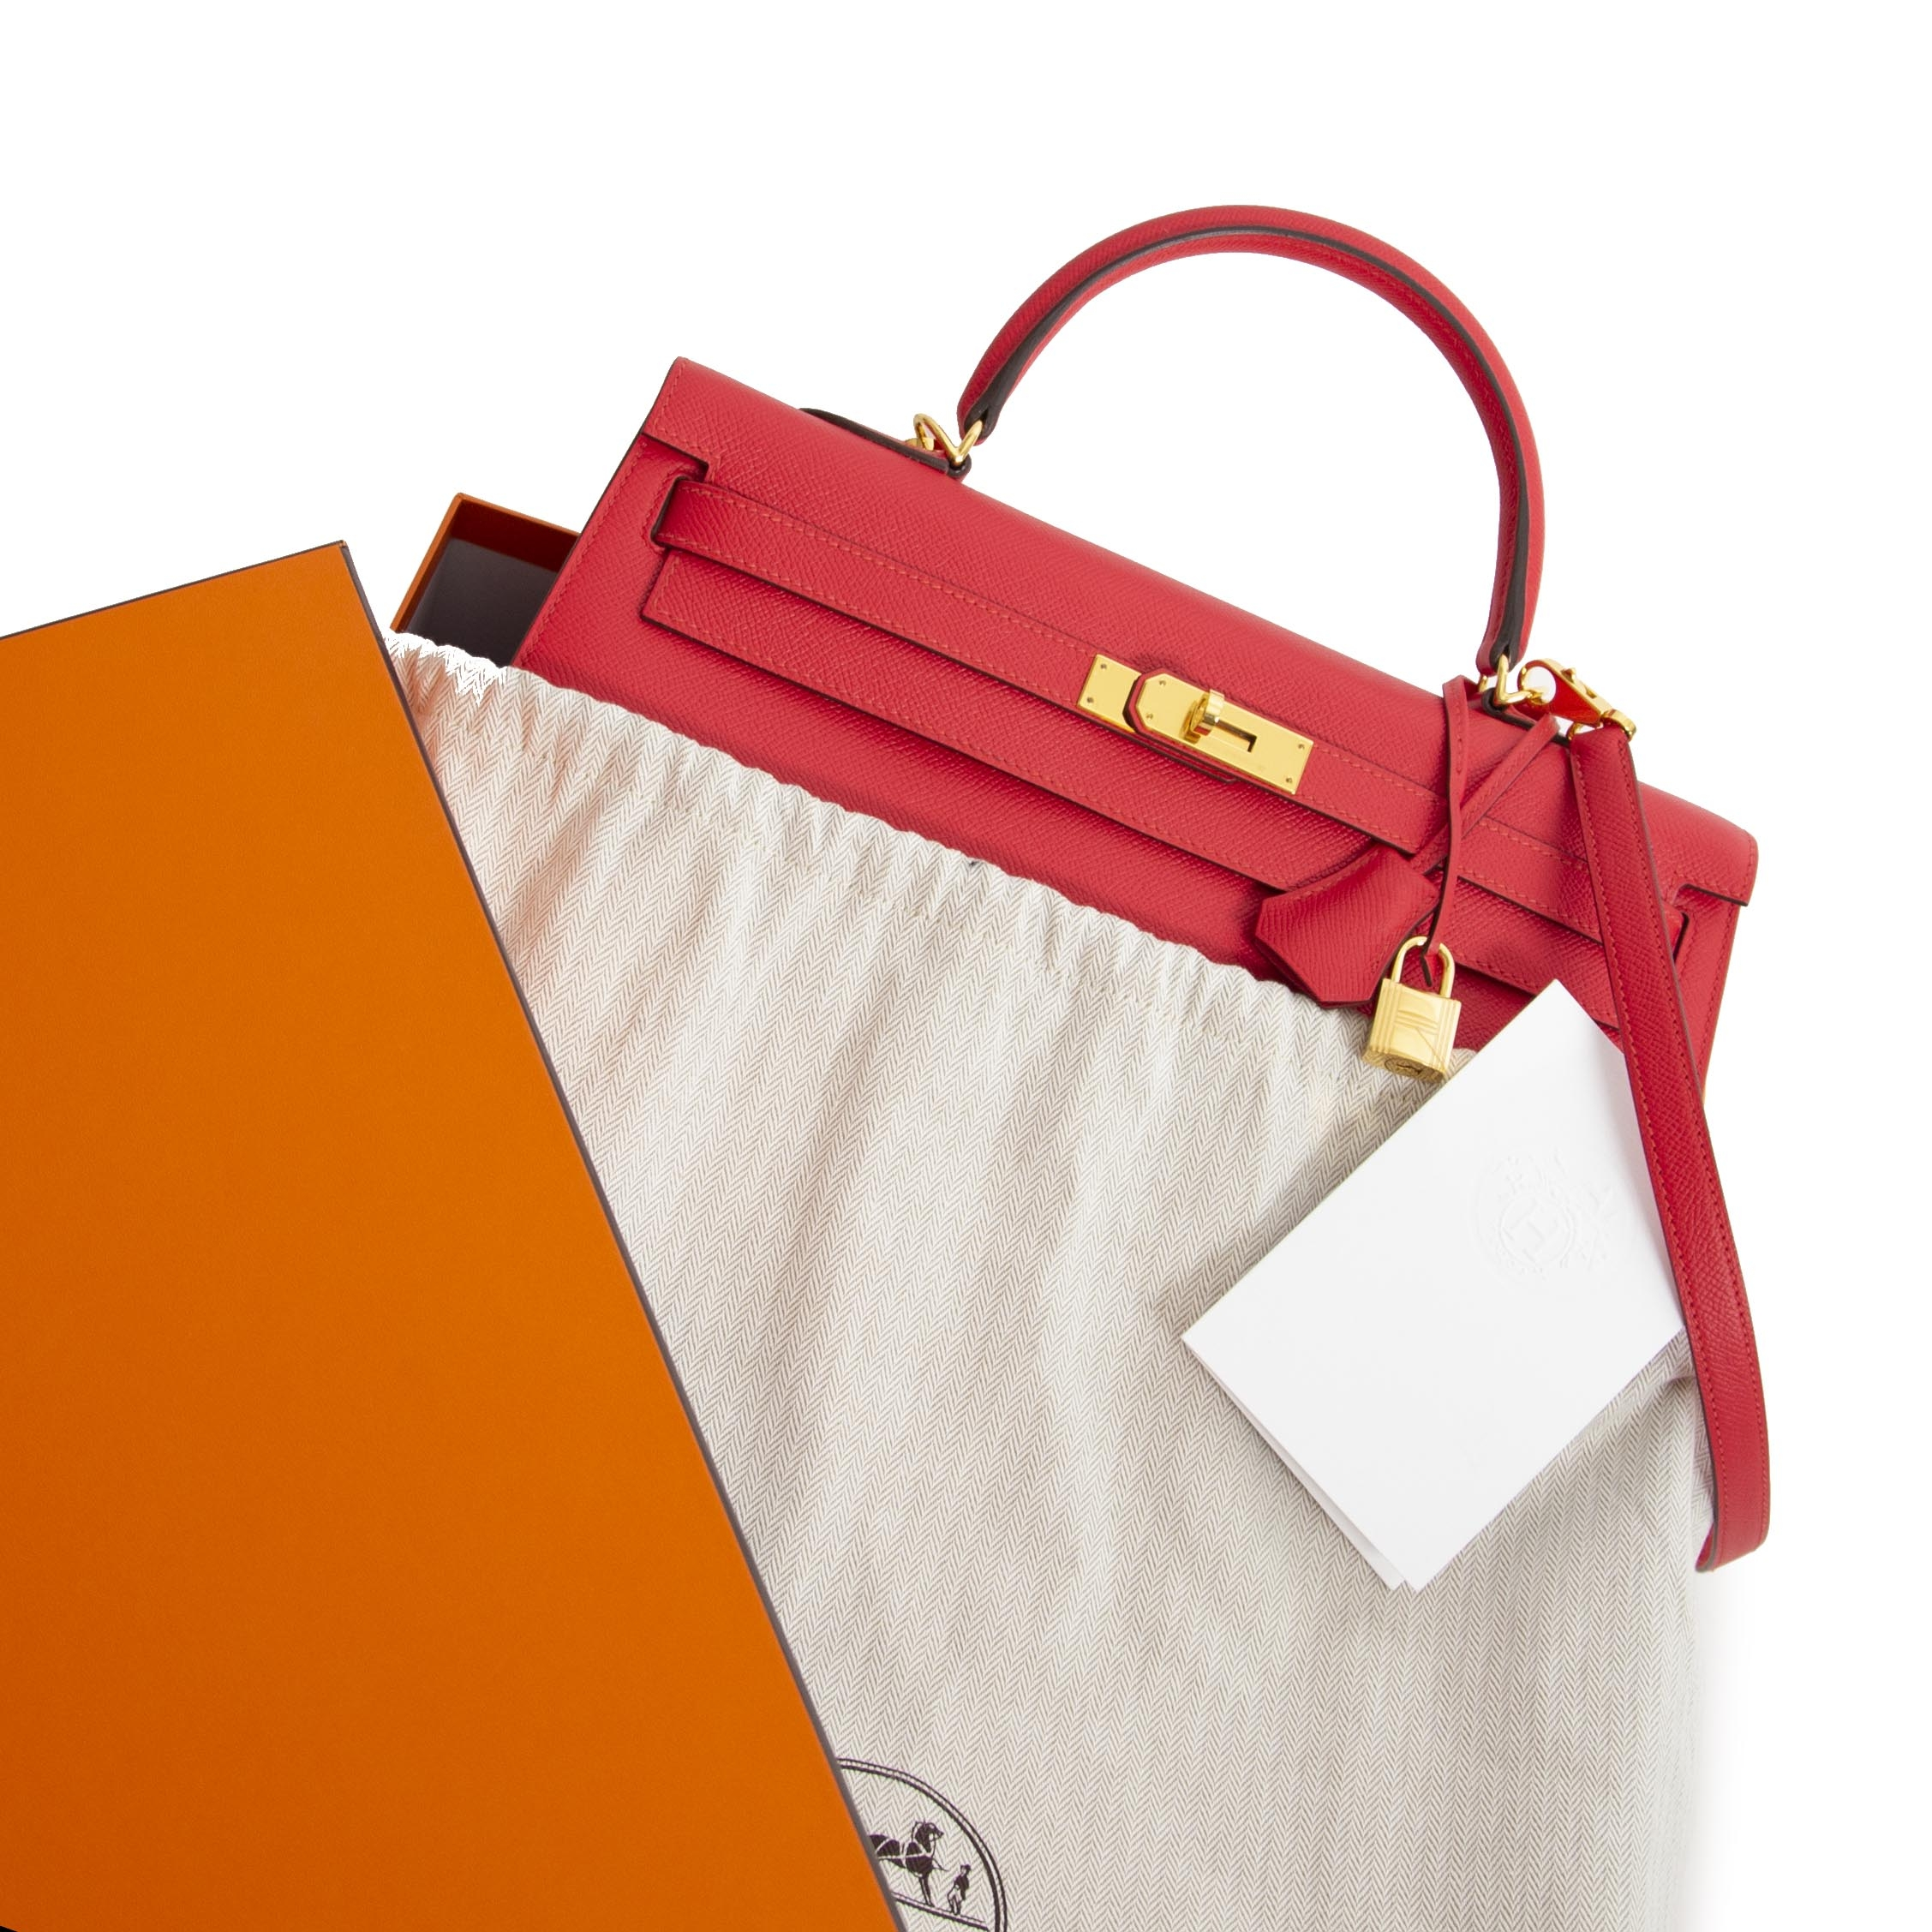 As New Hermès Kelly 35 Sellier Rouge Tomate PHW